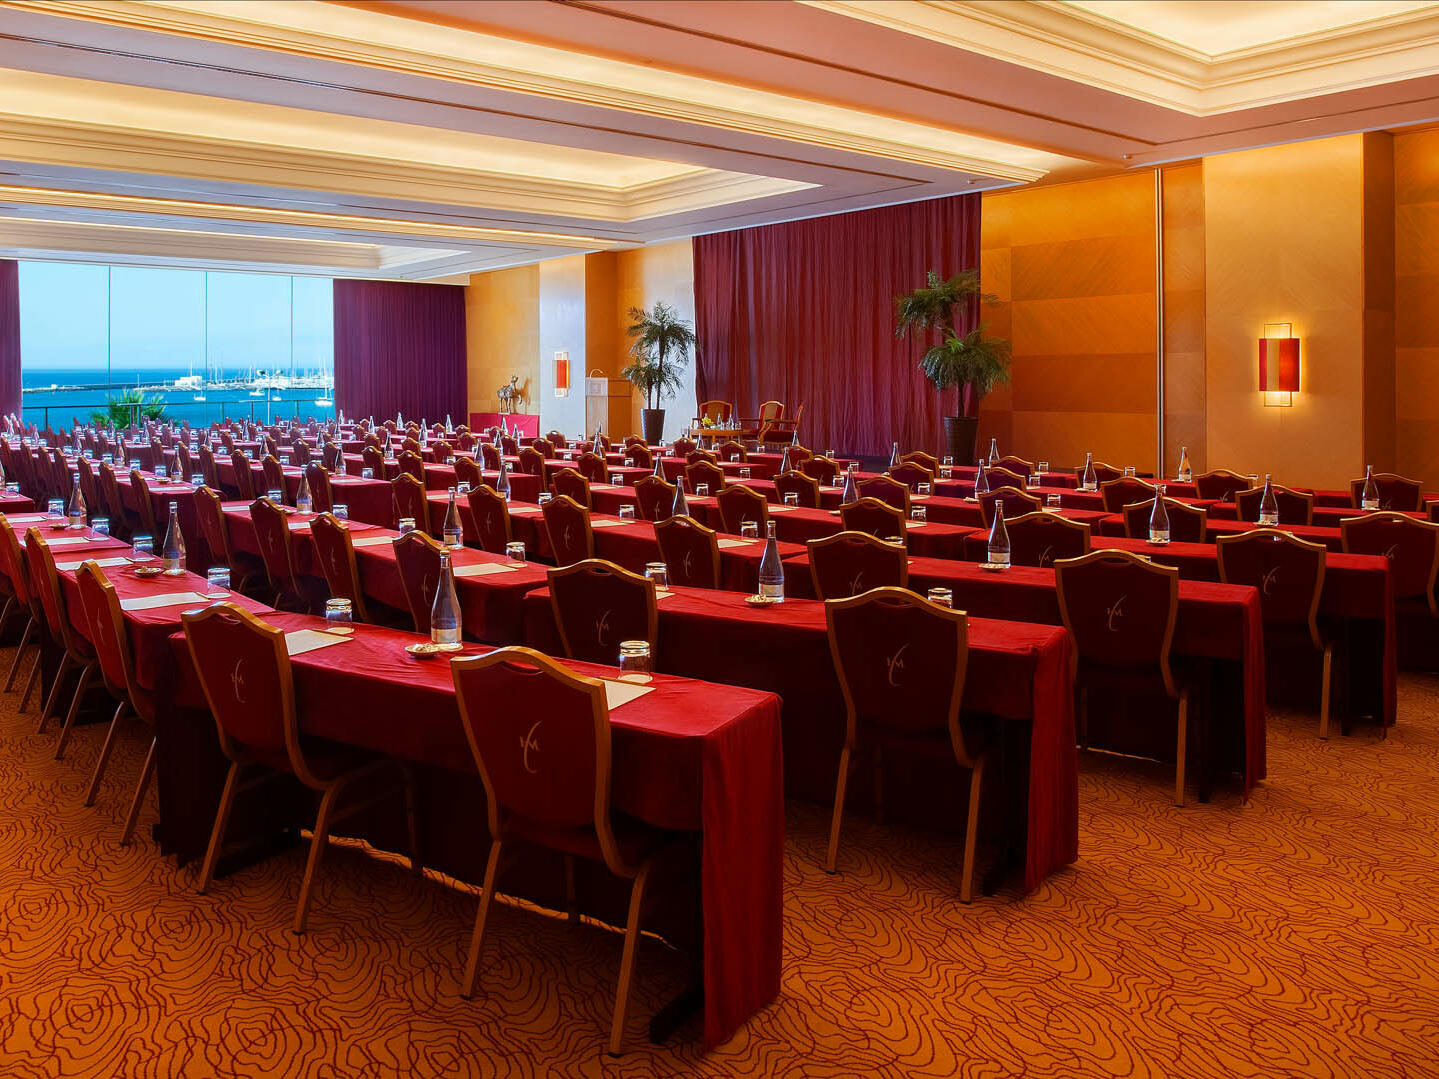 Meeting room arranged with red chairs at Hotel Cascais Miragem